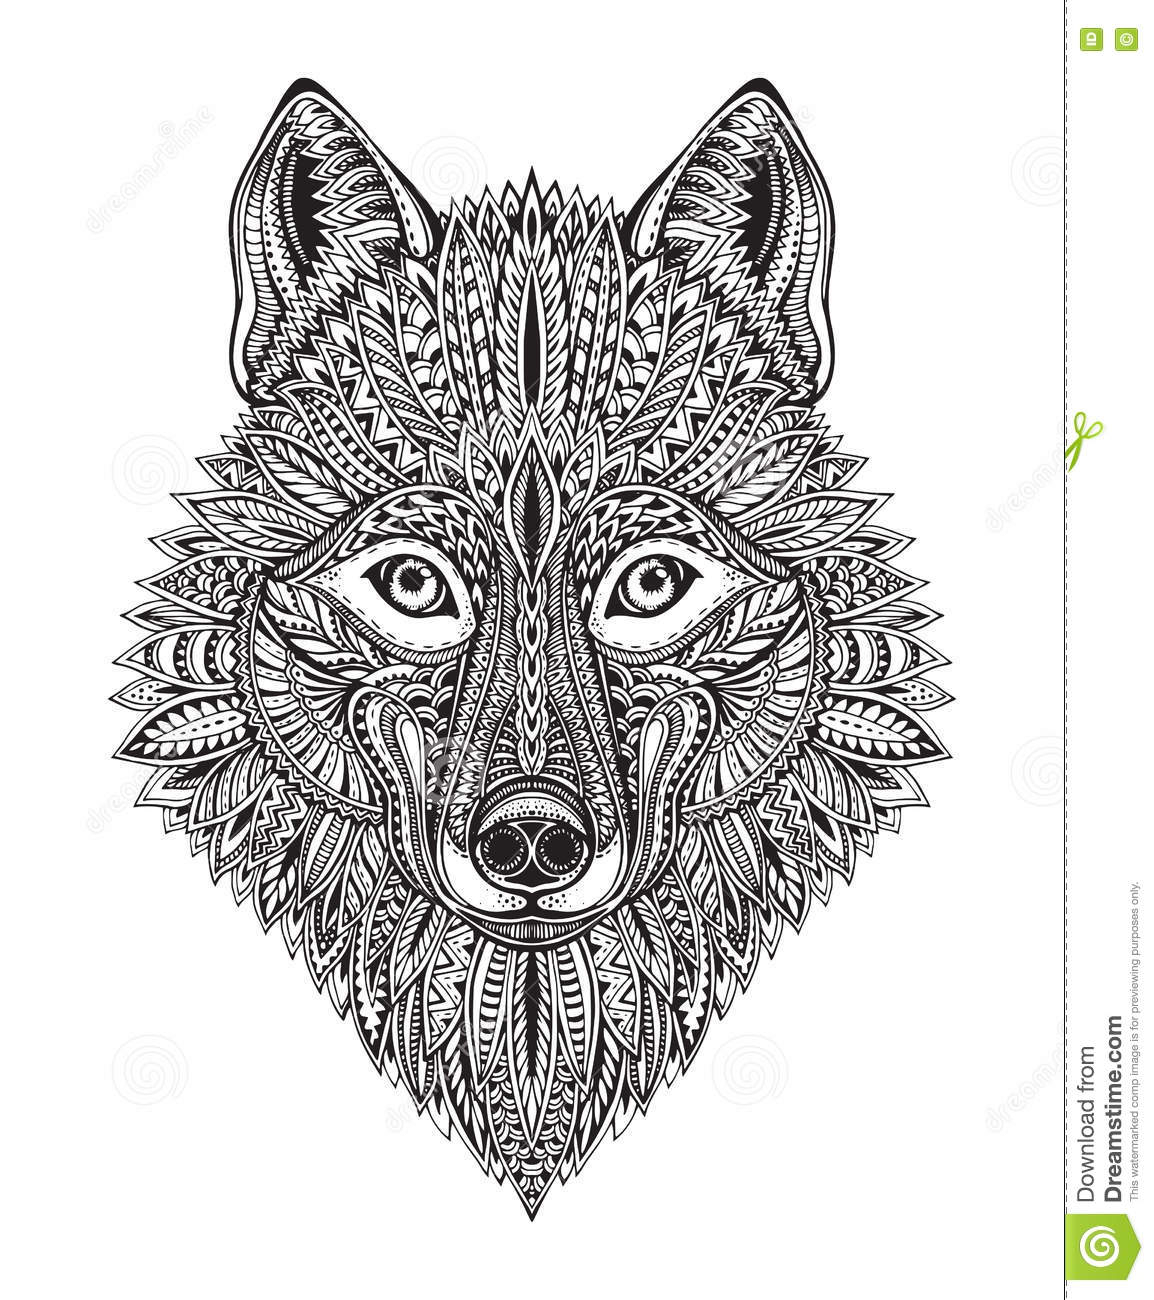 Hand Drawn Ornate Doodle Graphic Black And White Wolf Face Stock